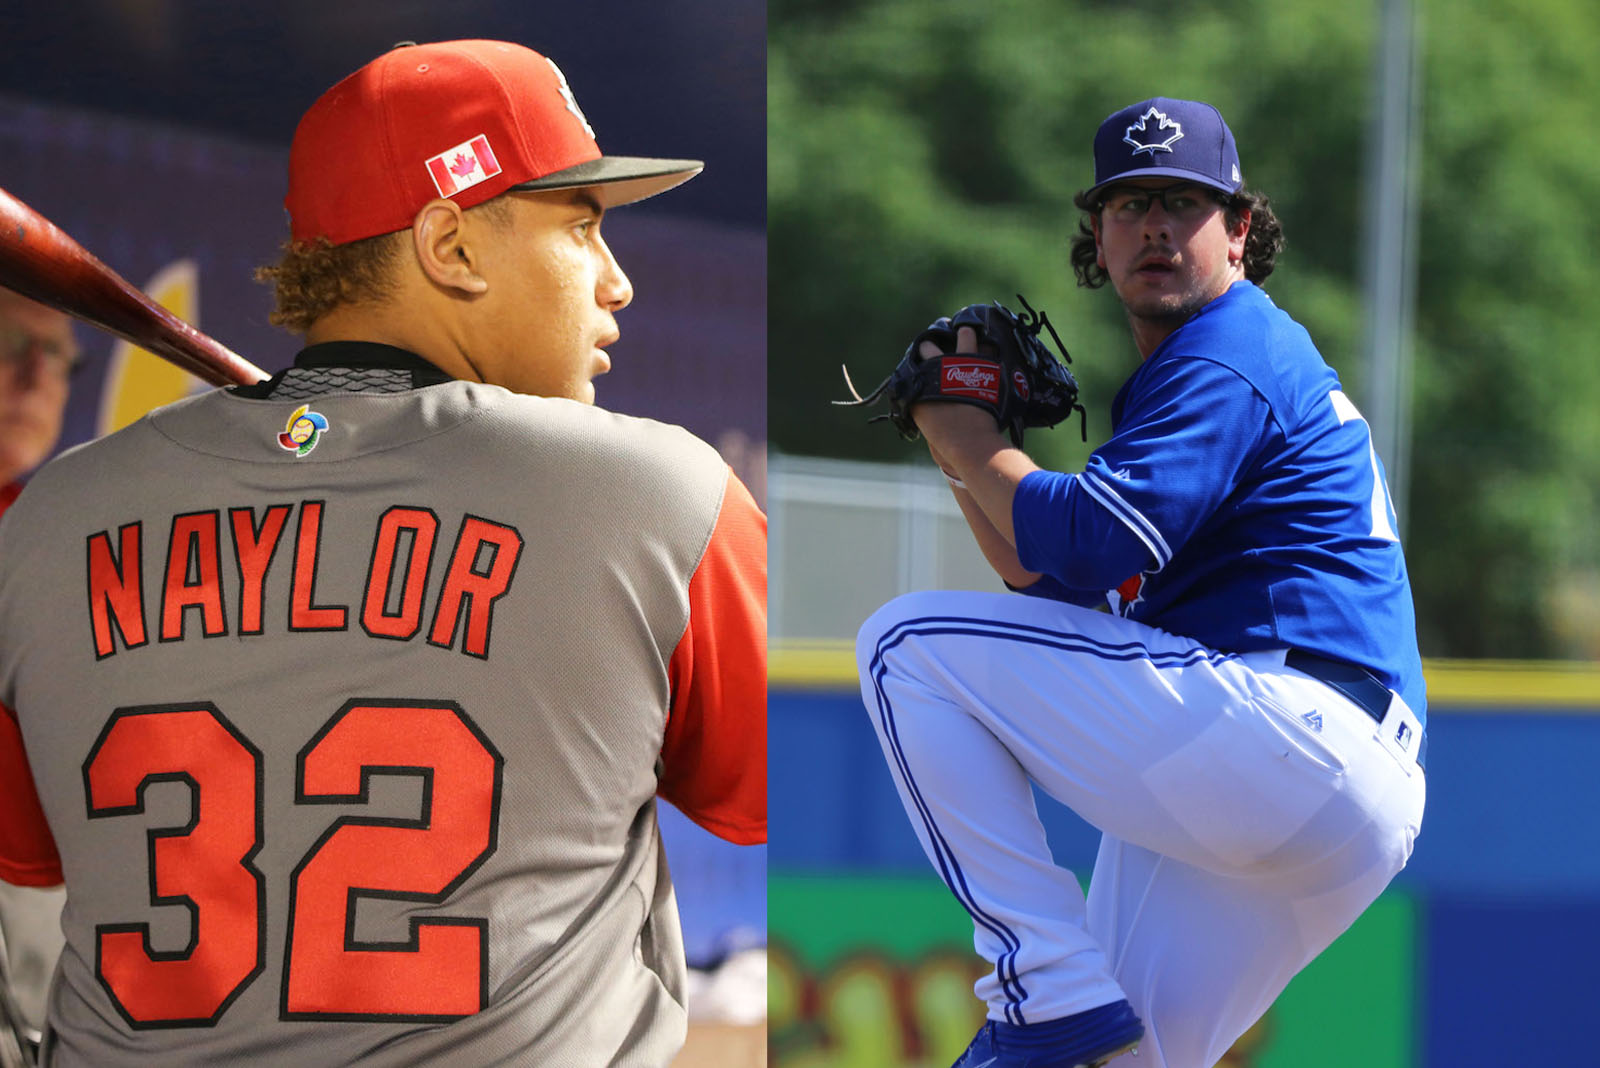 Canadian Prospect Watch: Naylor, Case enjoying strong AFL debuts